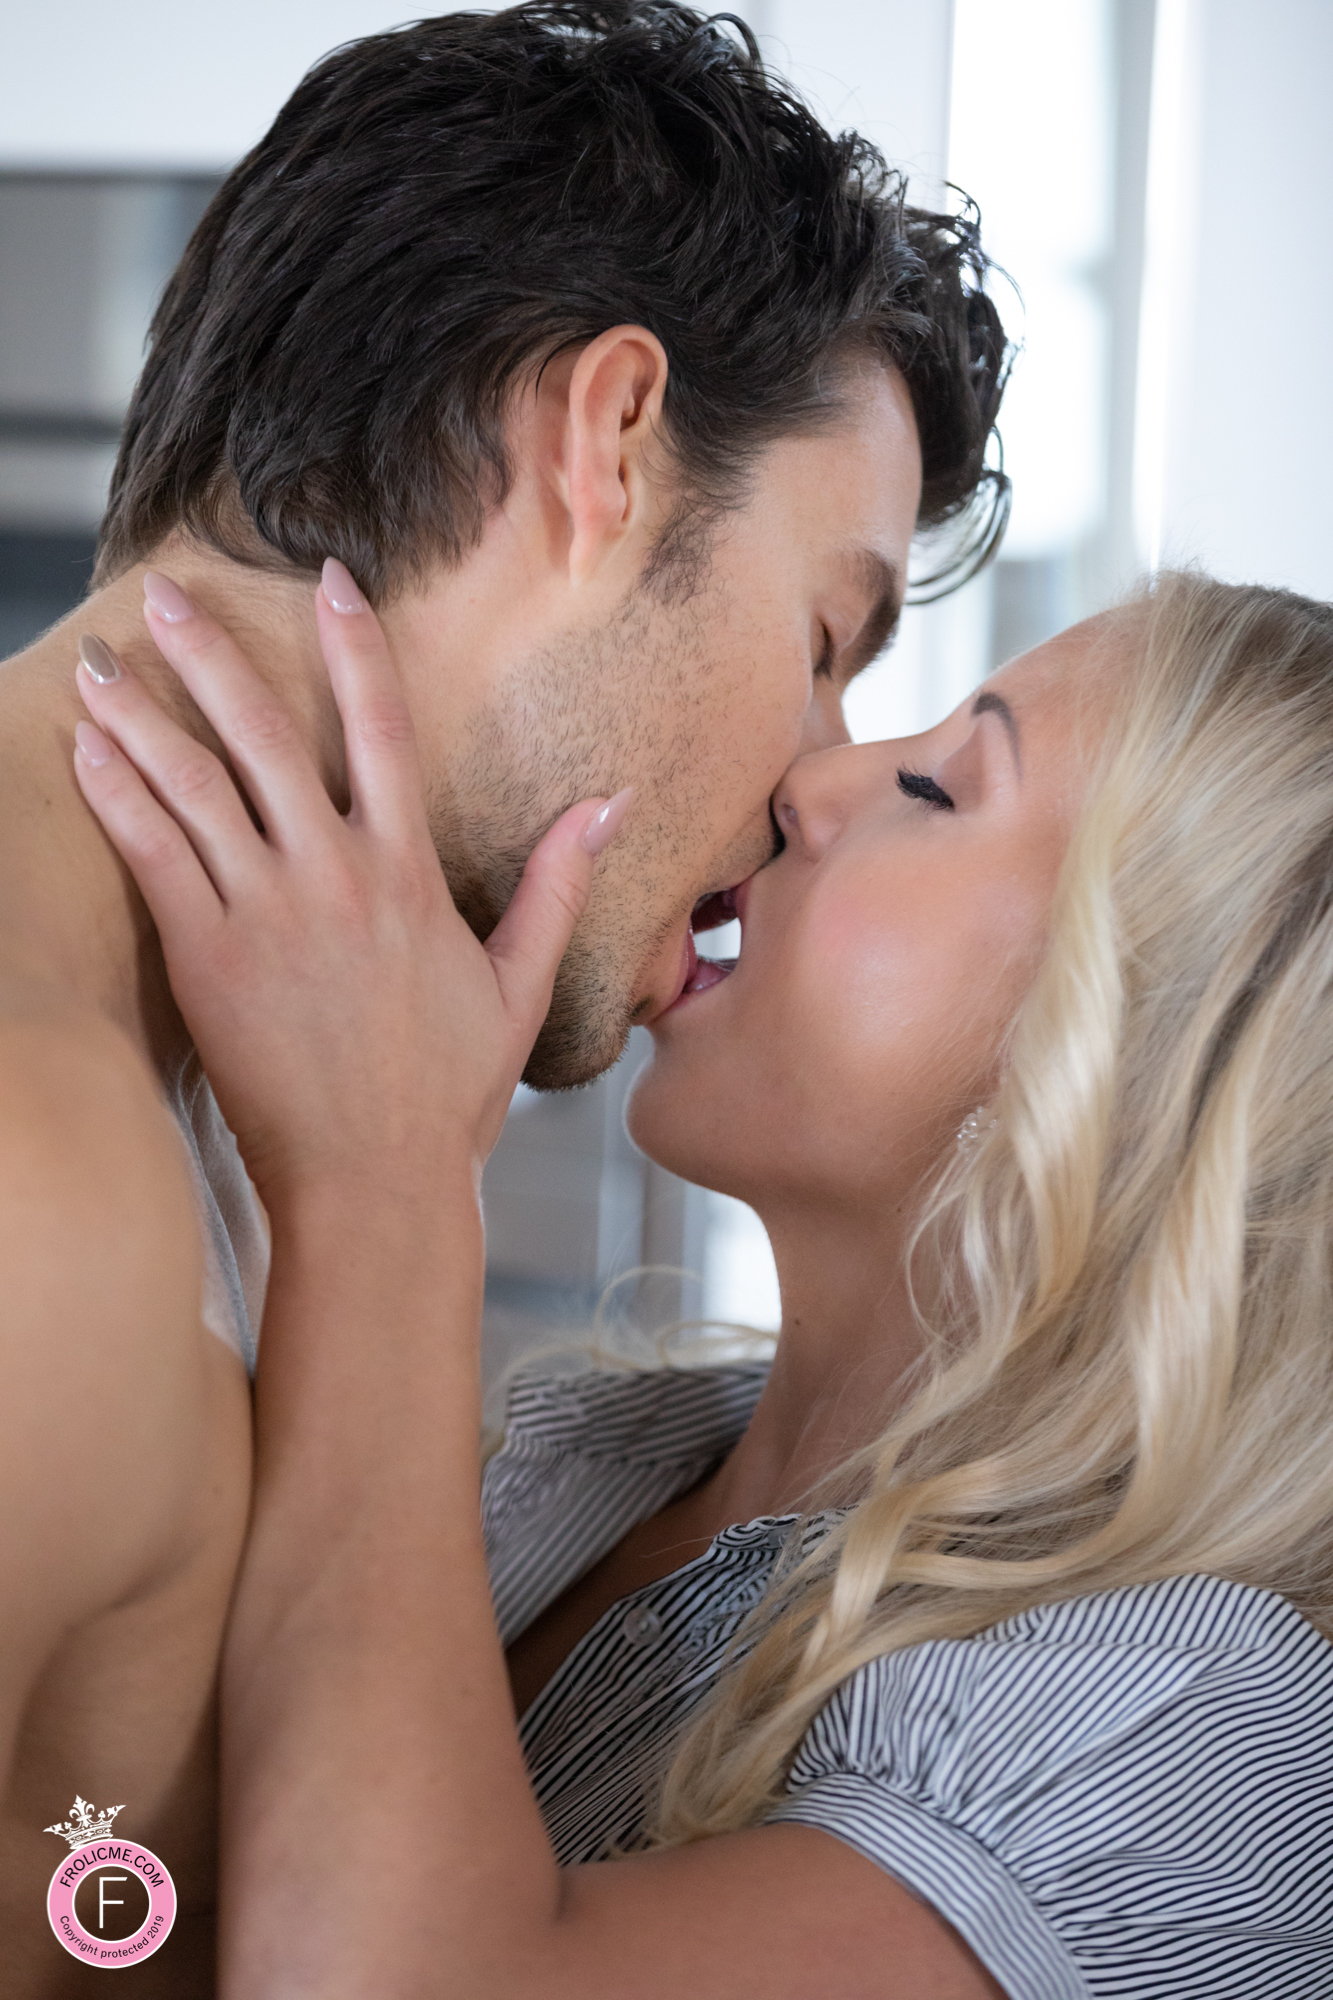 Frolicme: Passionate Desire - Erotic Sex Pics Of Some Spontaneous Fucking 8